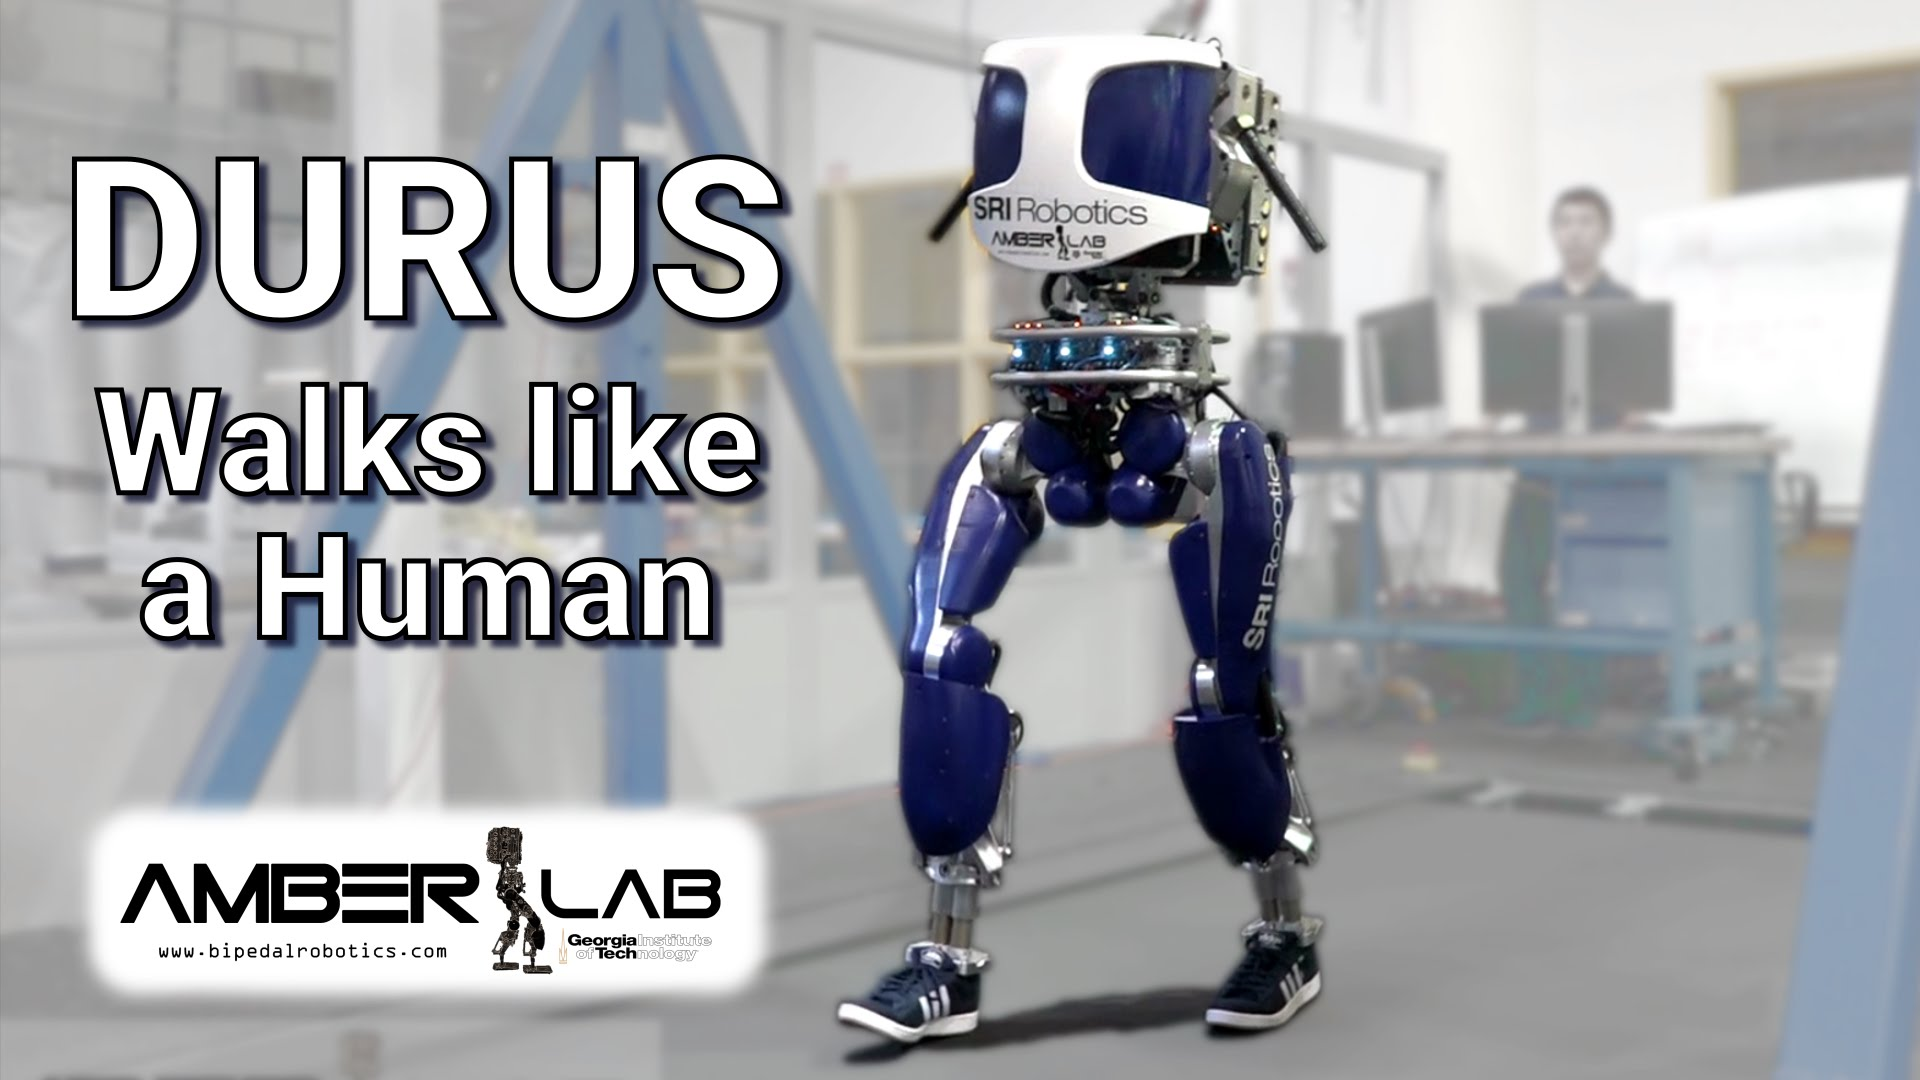 This Amazing Sneaker-Wearing Robot Walks Like a Human [Video]